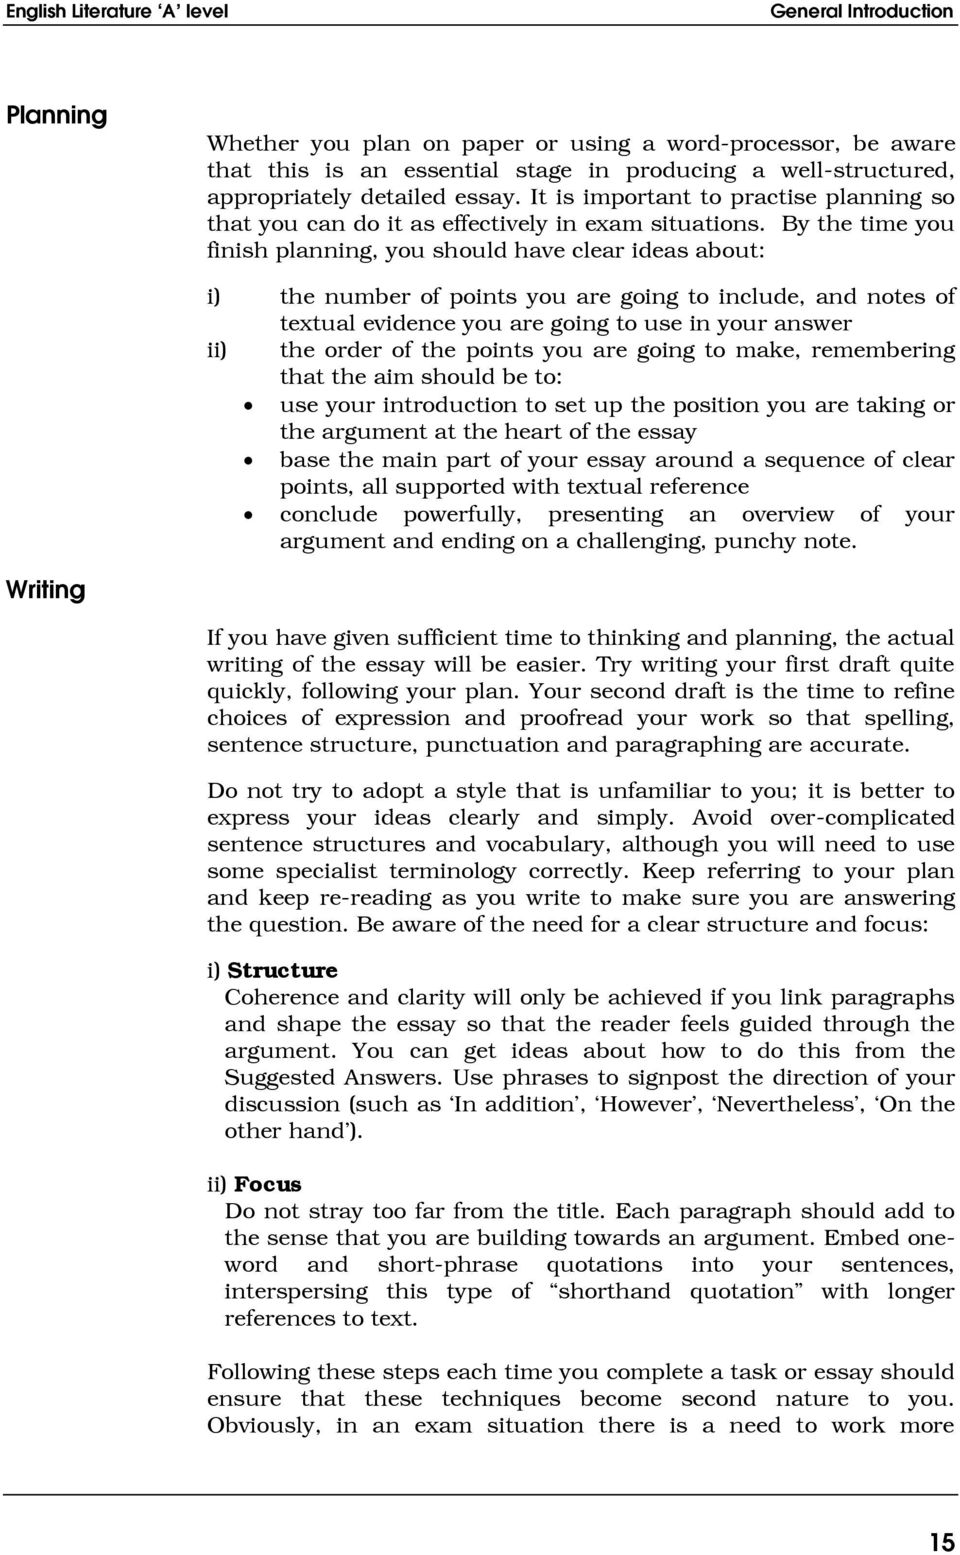 introduction welcome to your a level english literature course the